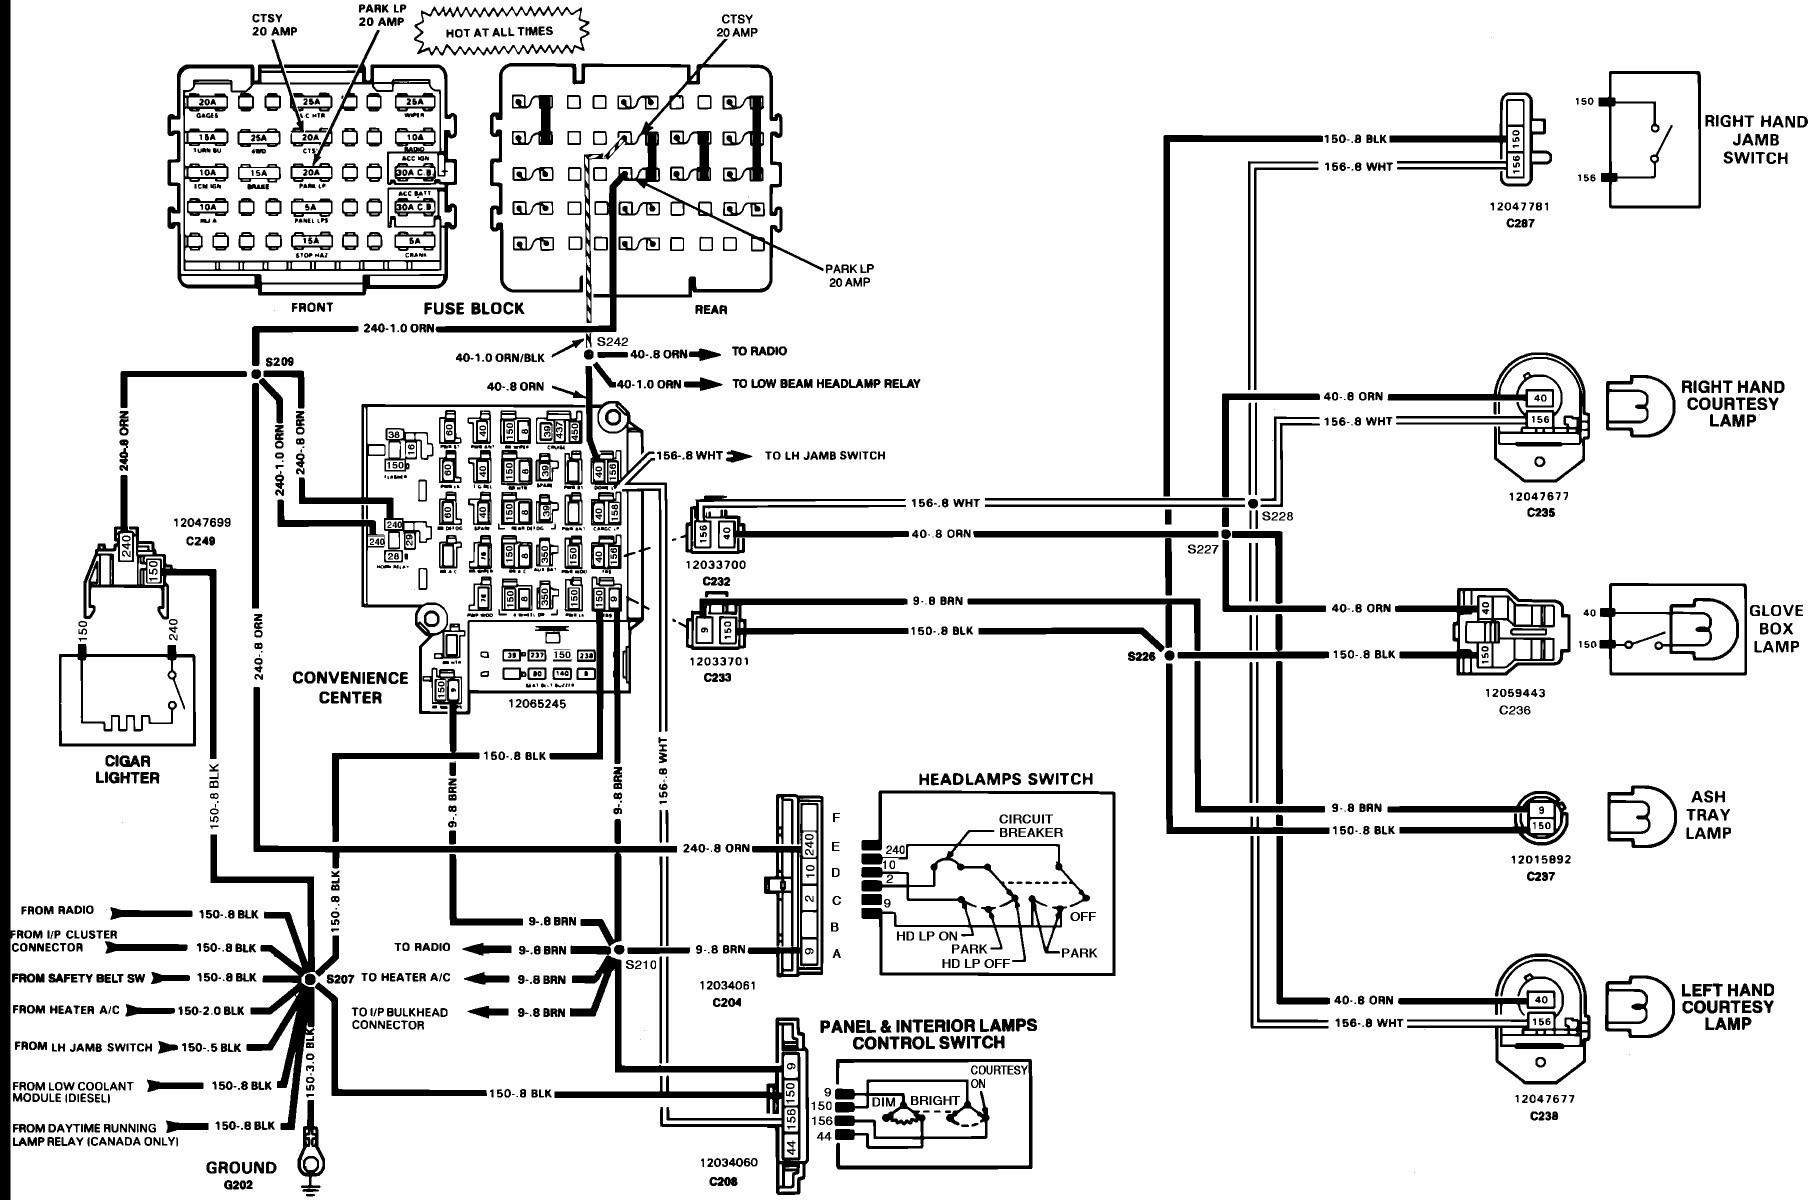 Swell Mopar Alternator Wiring Diagram Wiring Library Wiring 101 Capemaxxcnl